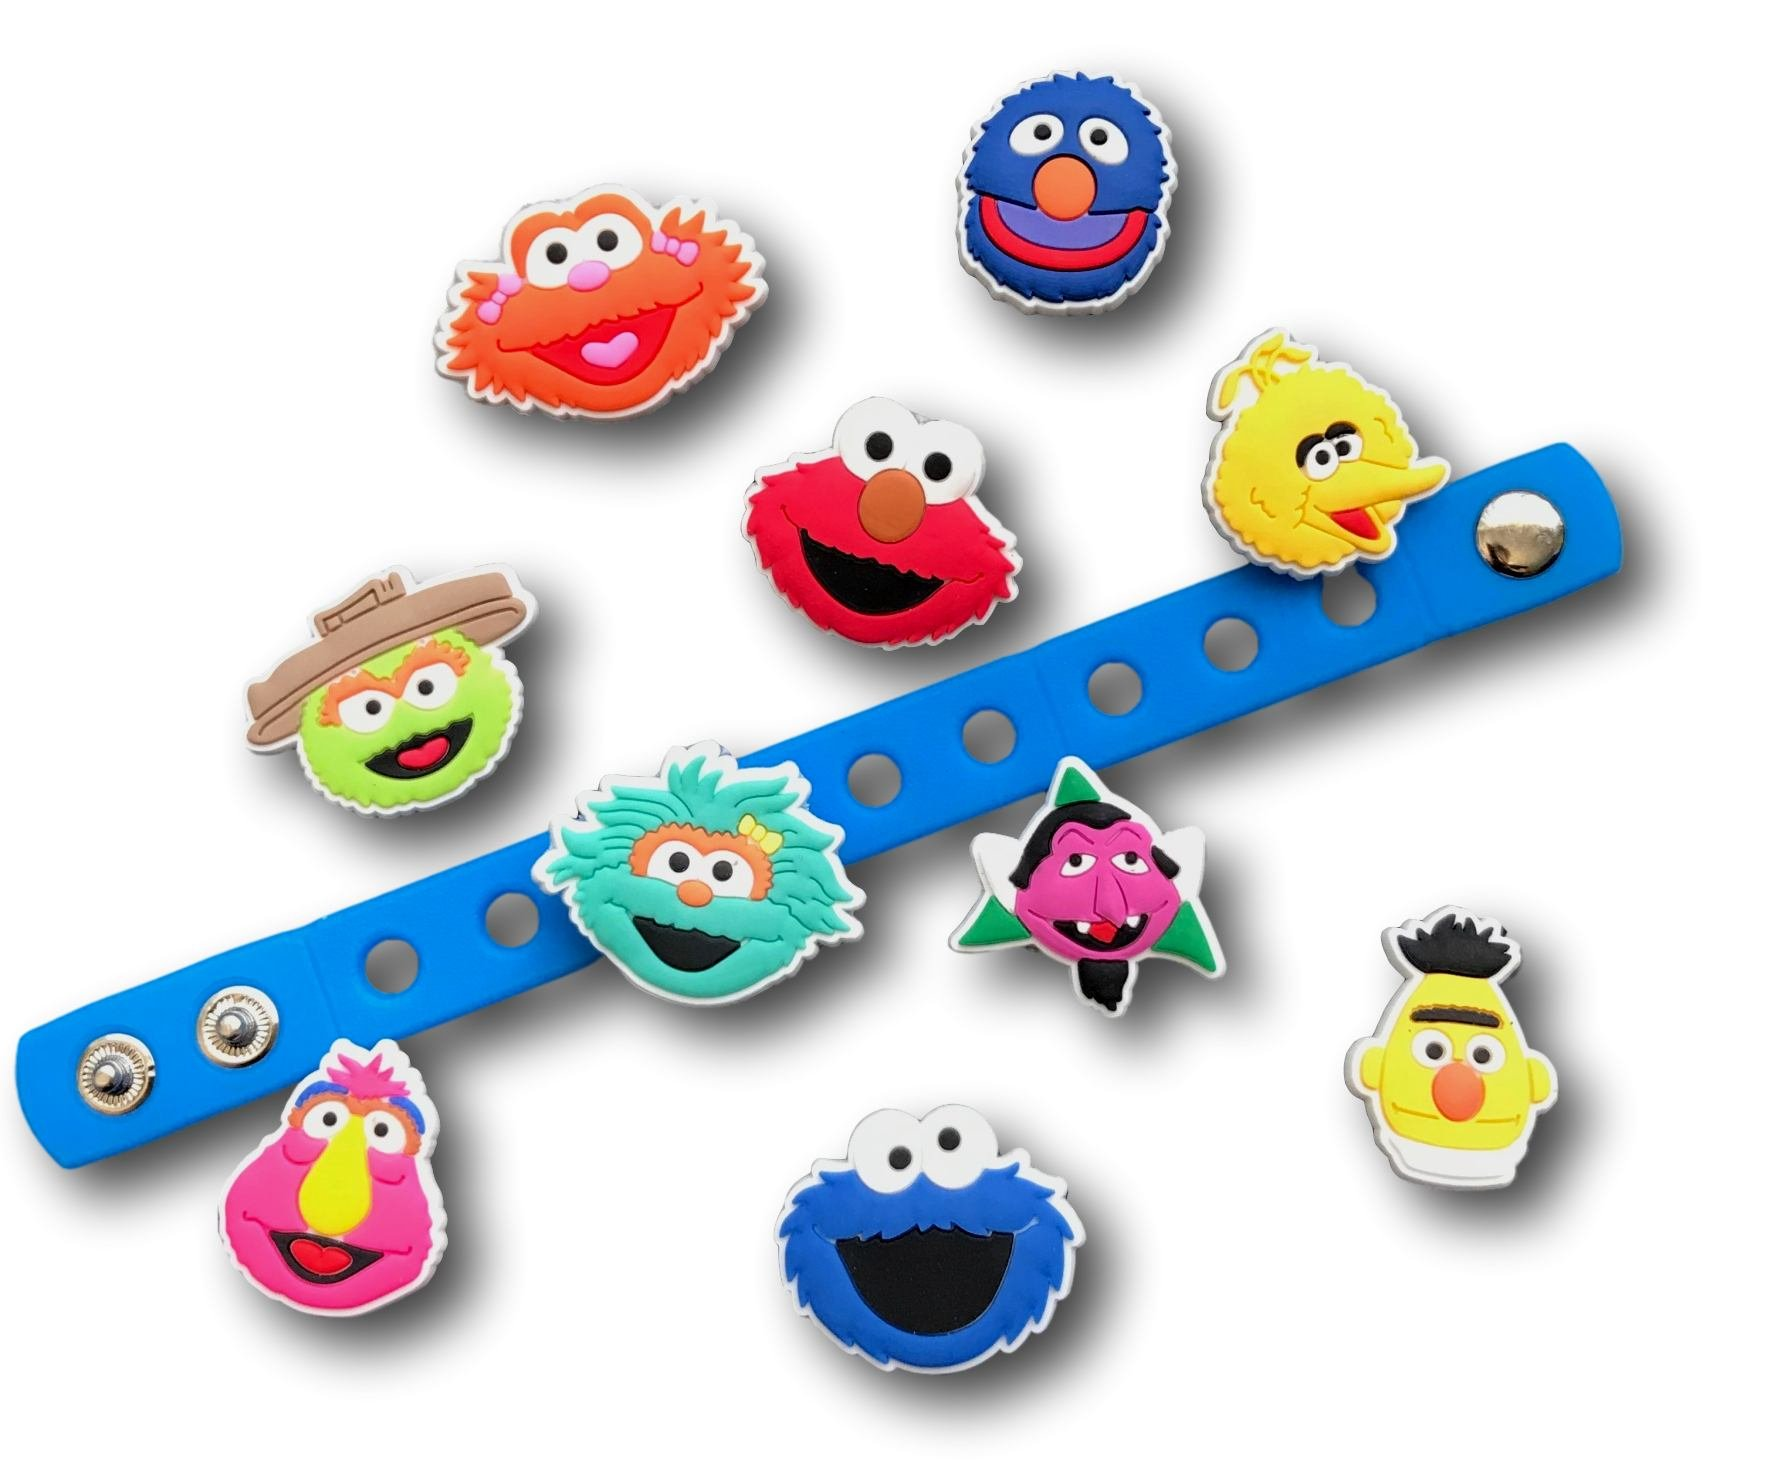 Cute Jibbitz Shoe Charms PVC Plug by Nenistore|Accessories for Crocs Shoes & Bracelet Wristband Party Gifts | Sesame Street (Set of 5 assorted pcs) FREE 01 Silicone Wristband 7 Inches